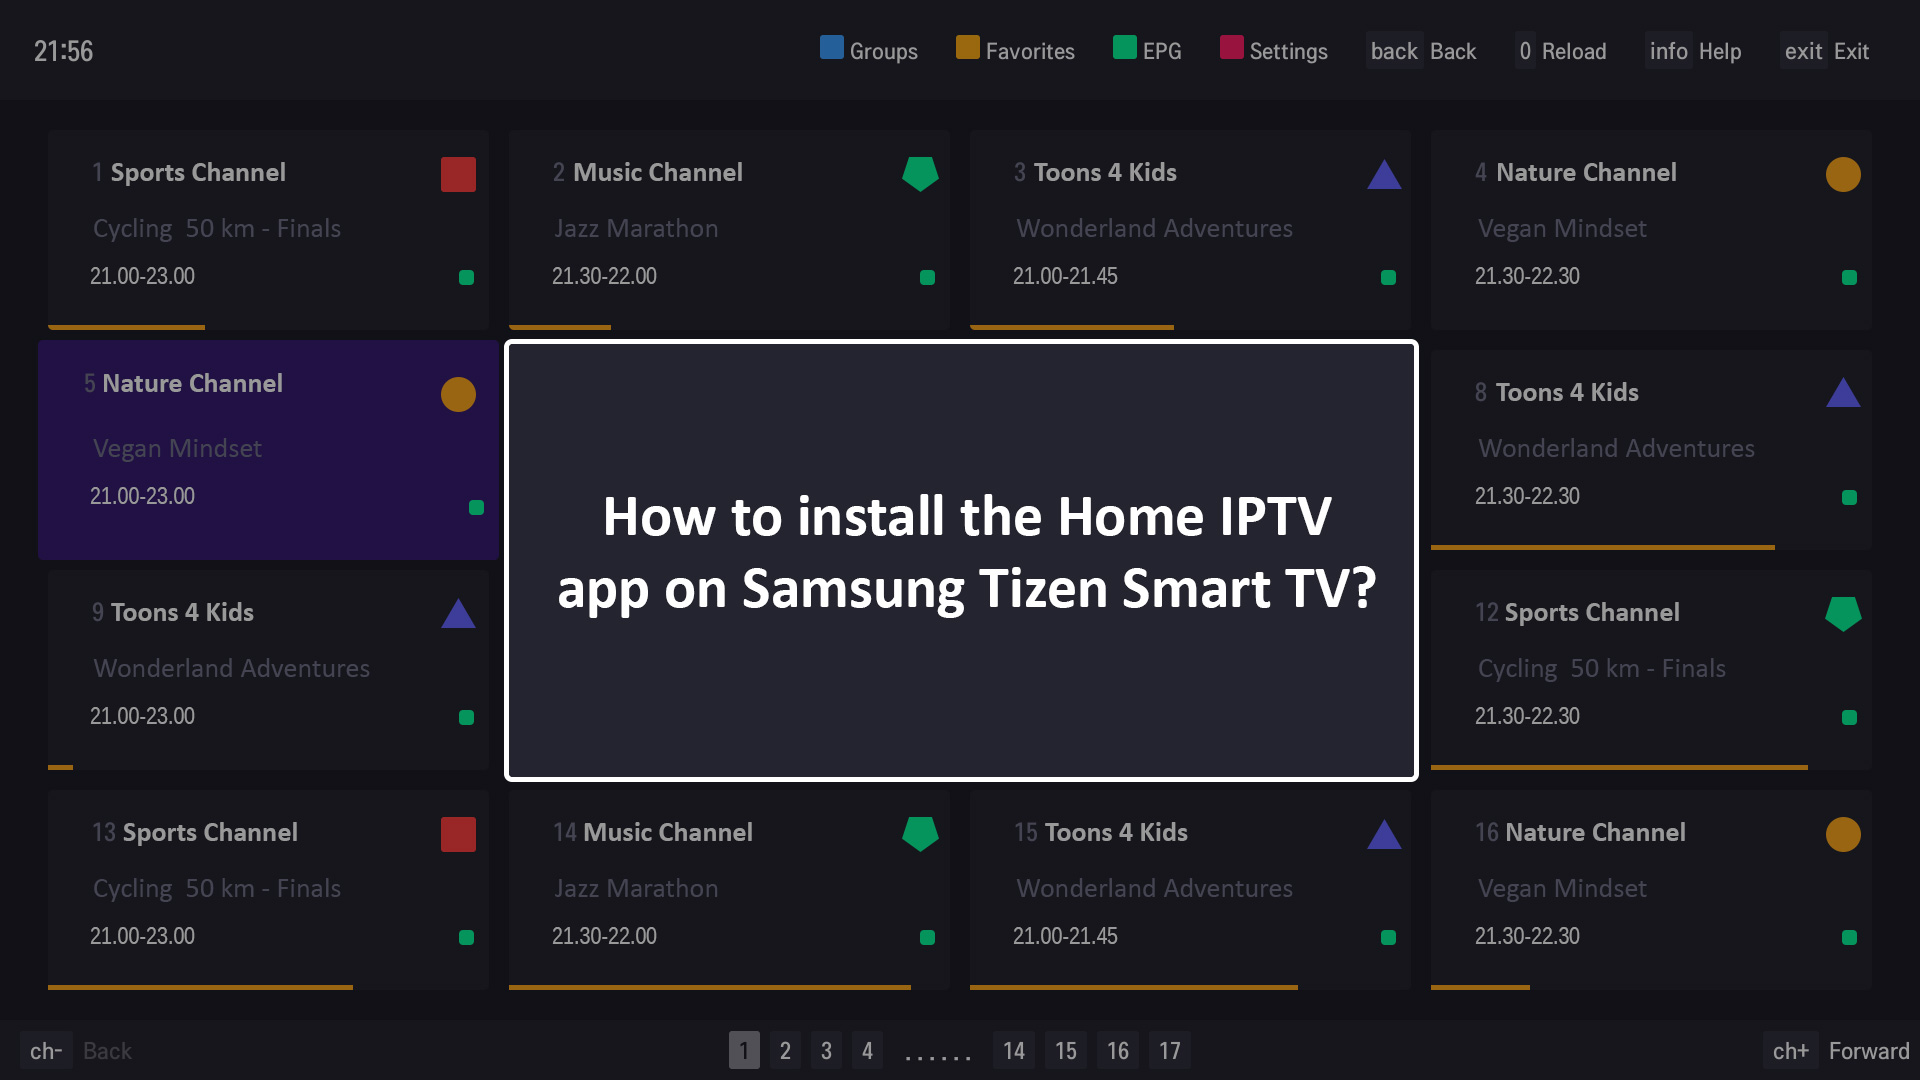 How-to-install-the-Home-IPTV-app-on-Samsung-Tizen-Smart-TV